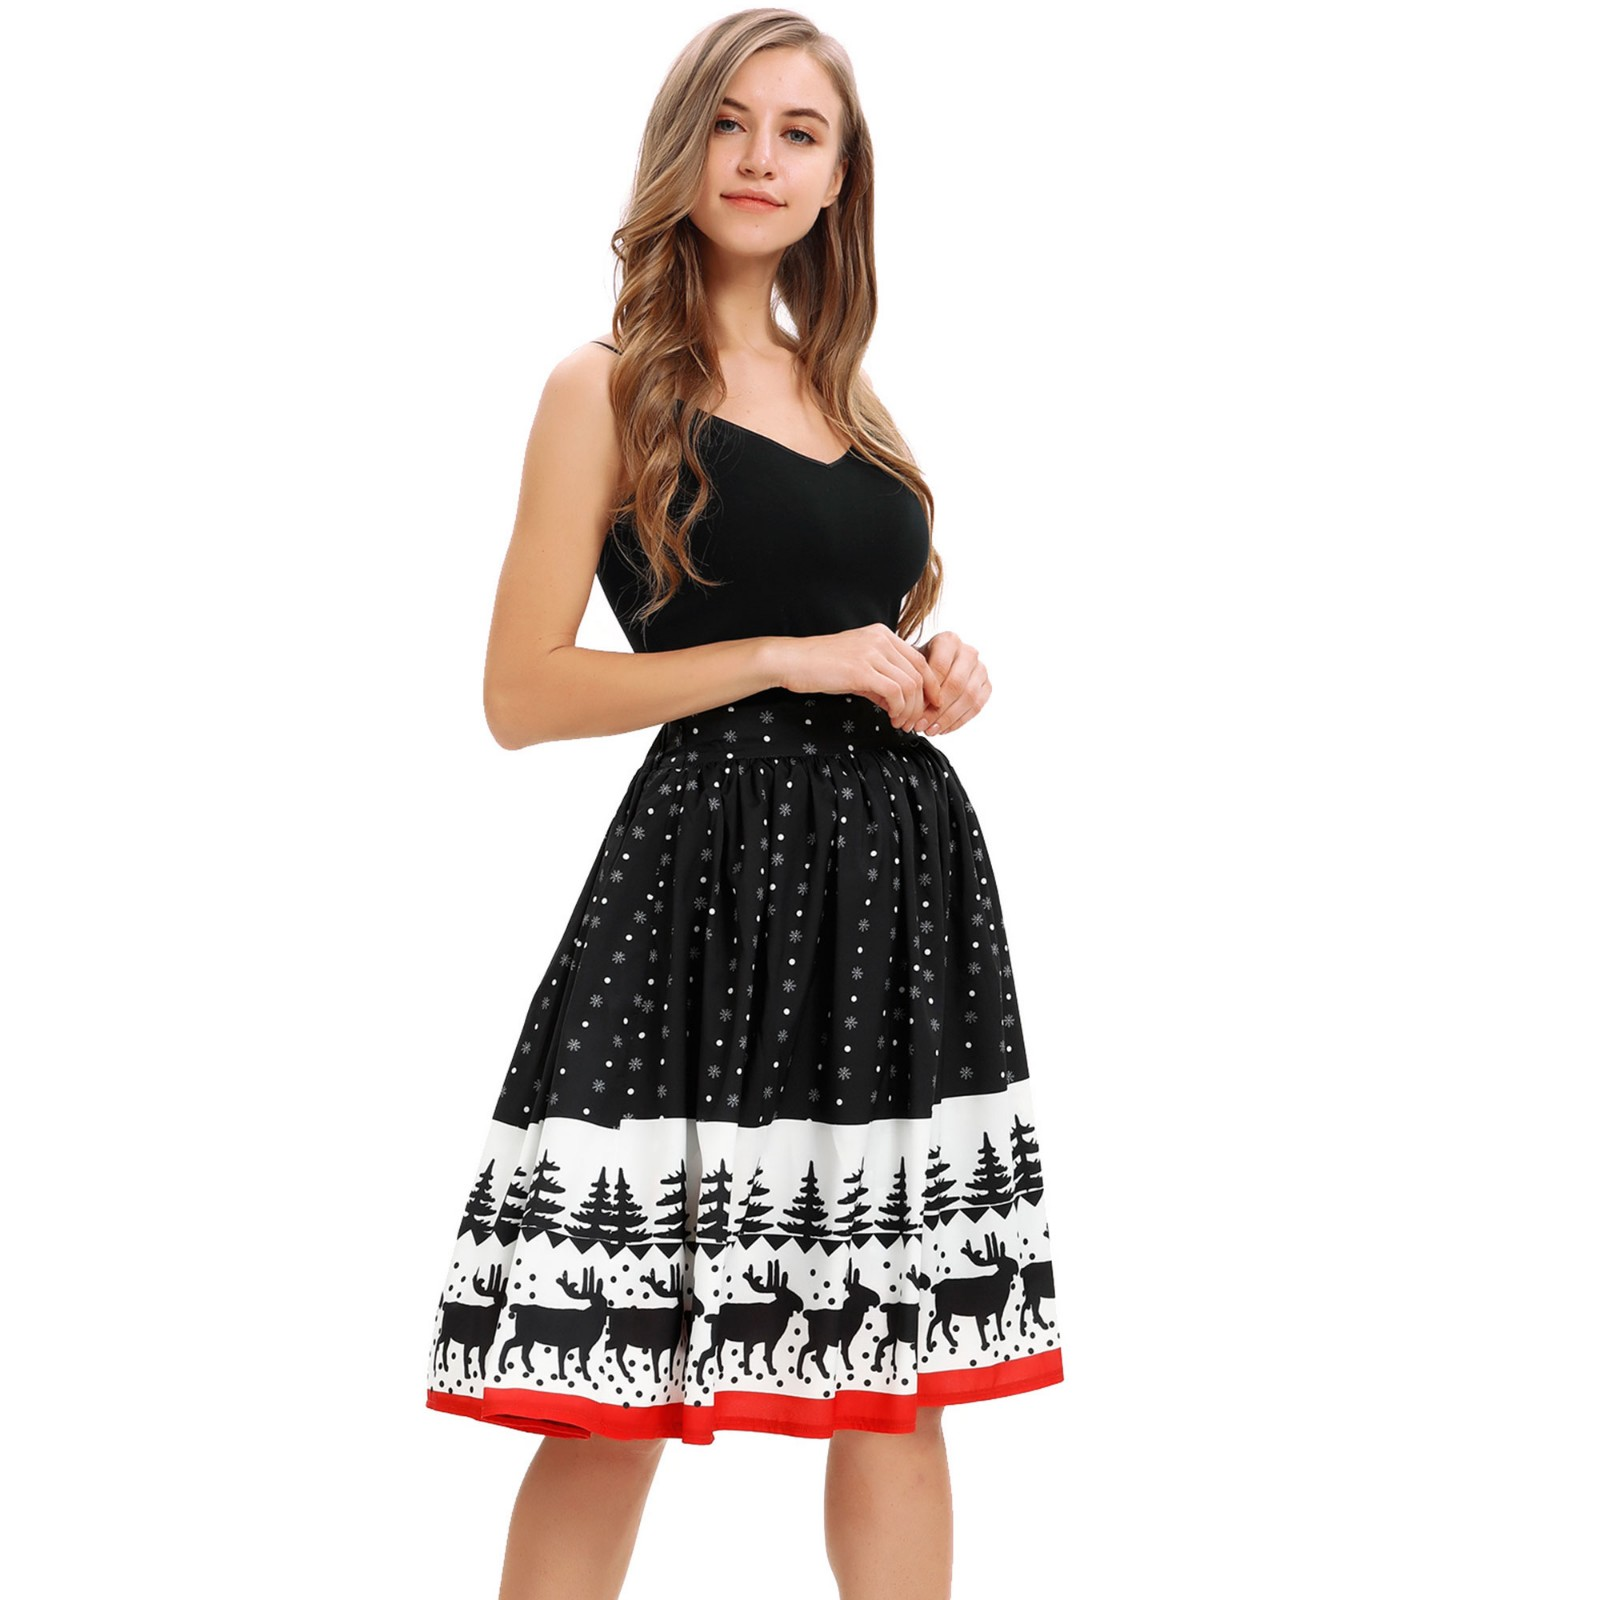 Jaycosin skirt women's ladies Christmas print knee-length skirt stretch high waist wild Christmas party sexy skirt